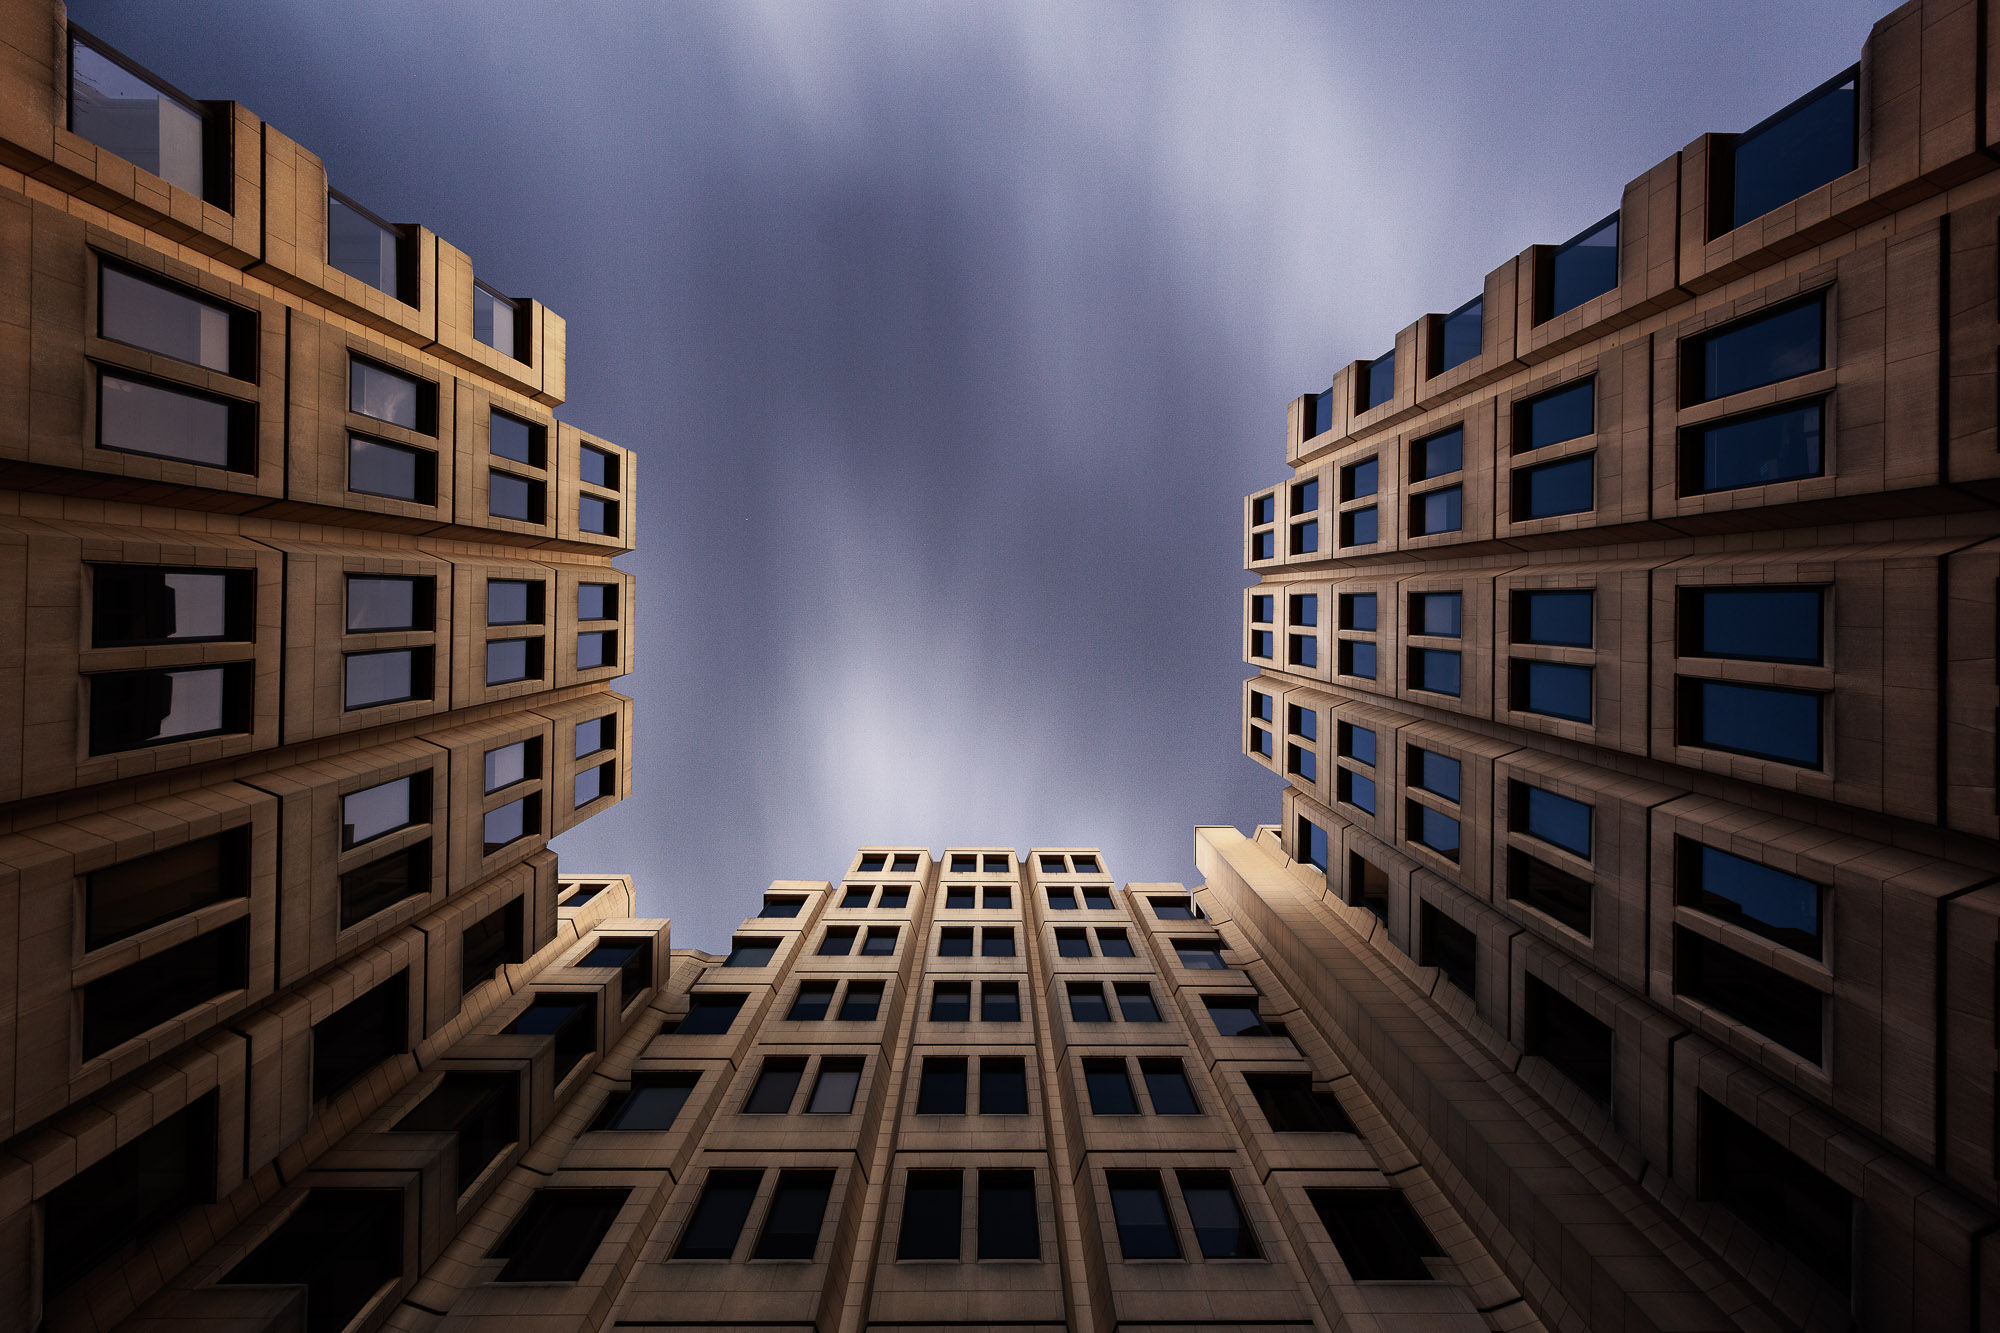 long exposure architecture photograph looking up at St Giles in London